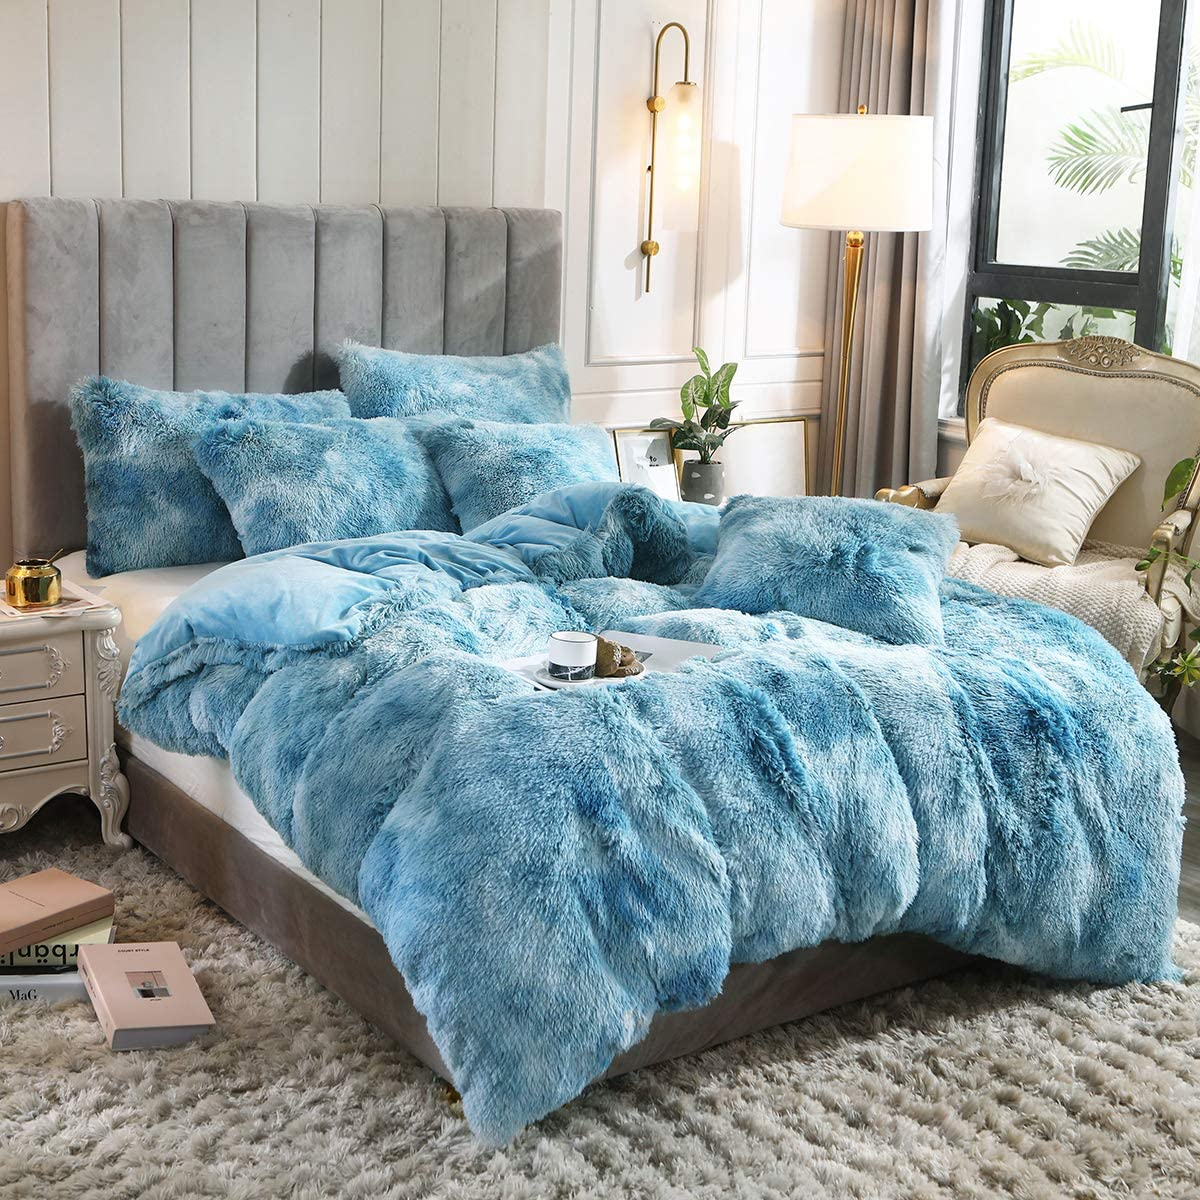 Uhamho Tie Dye Printed Shaggy Plush Duvet Cover 1 PC Modern Abstract Faux Fur Bedding Blanket, Ultra Soft Warm and Durable (King, Turquoise)